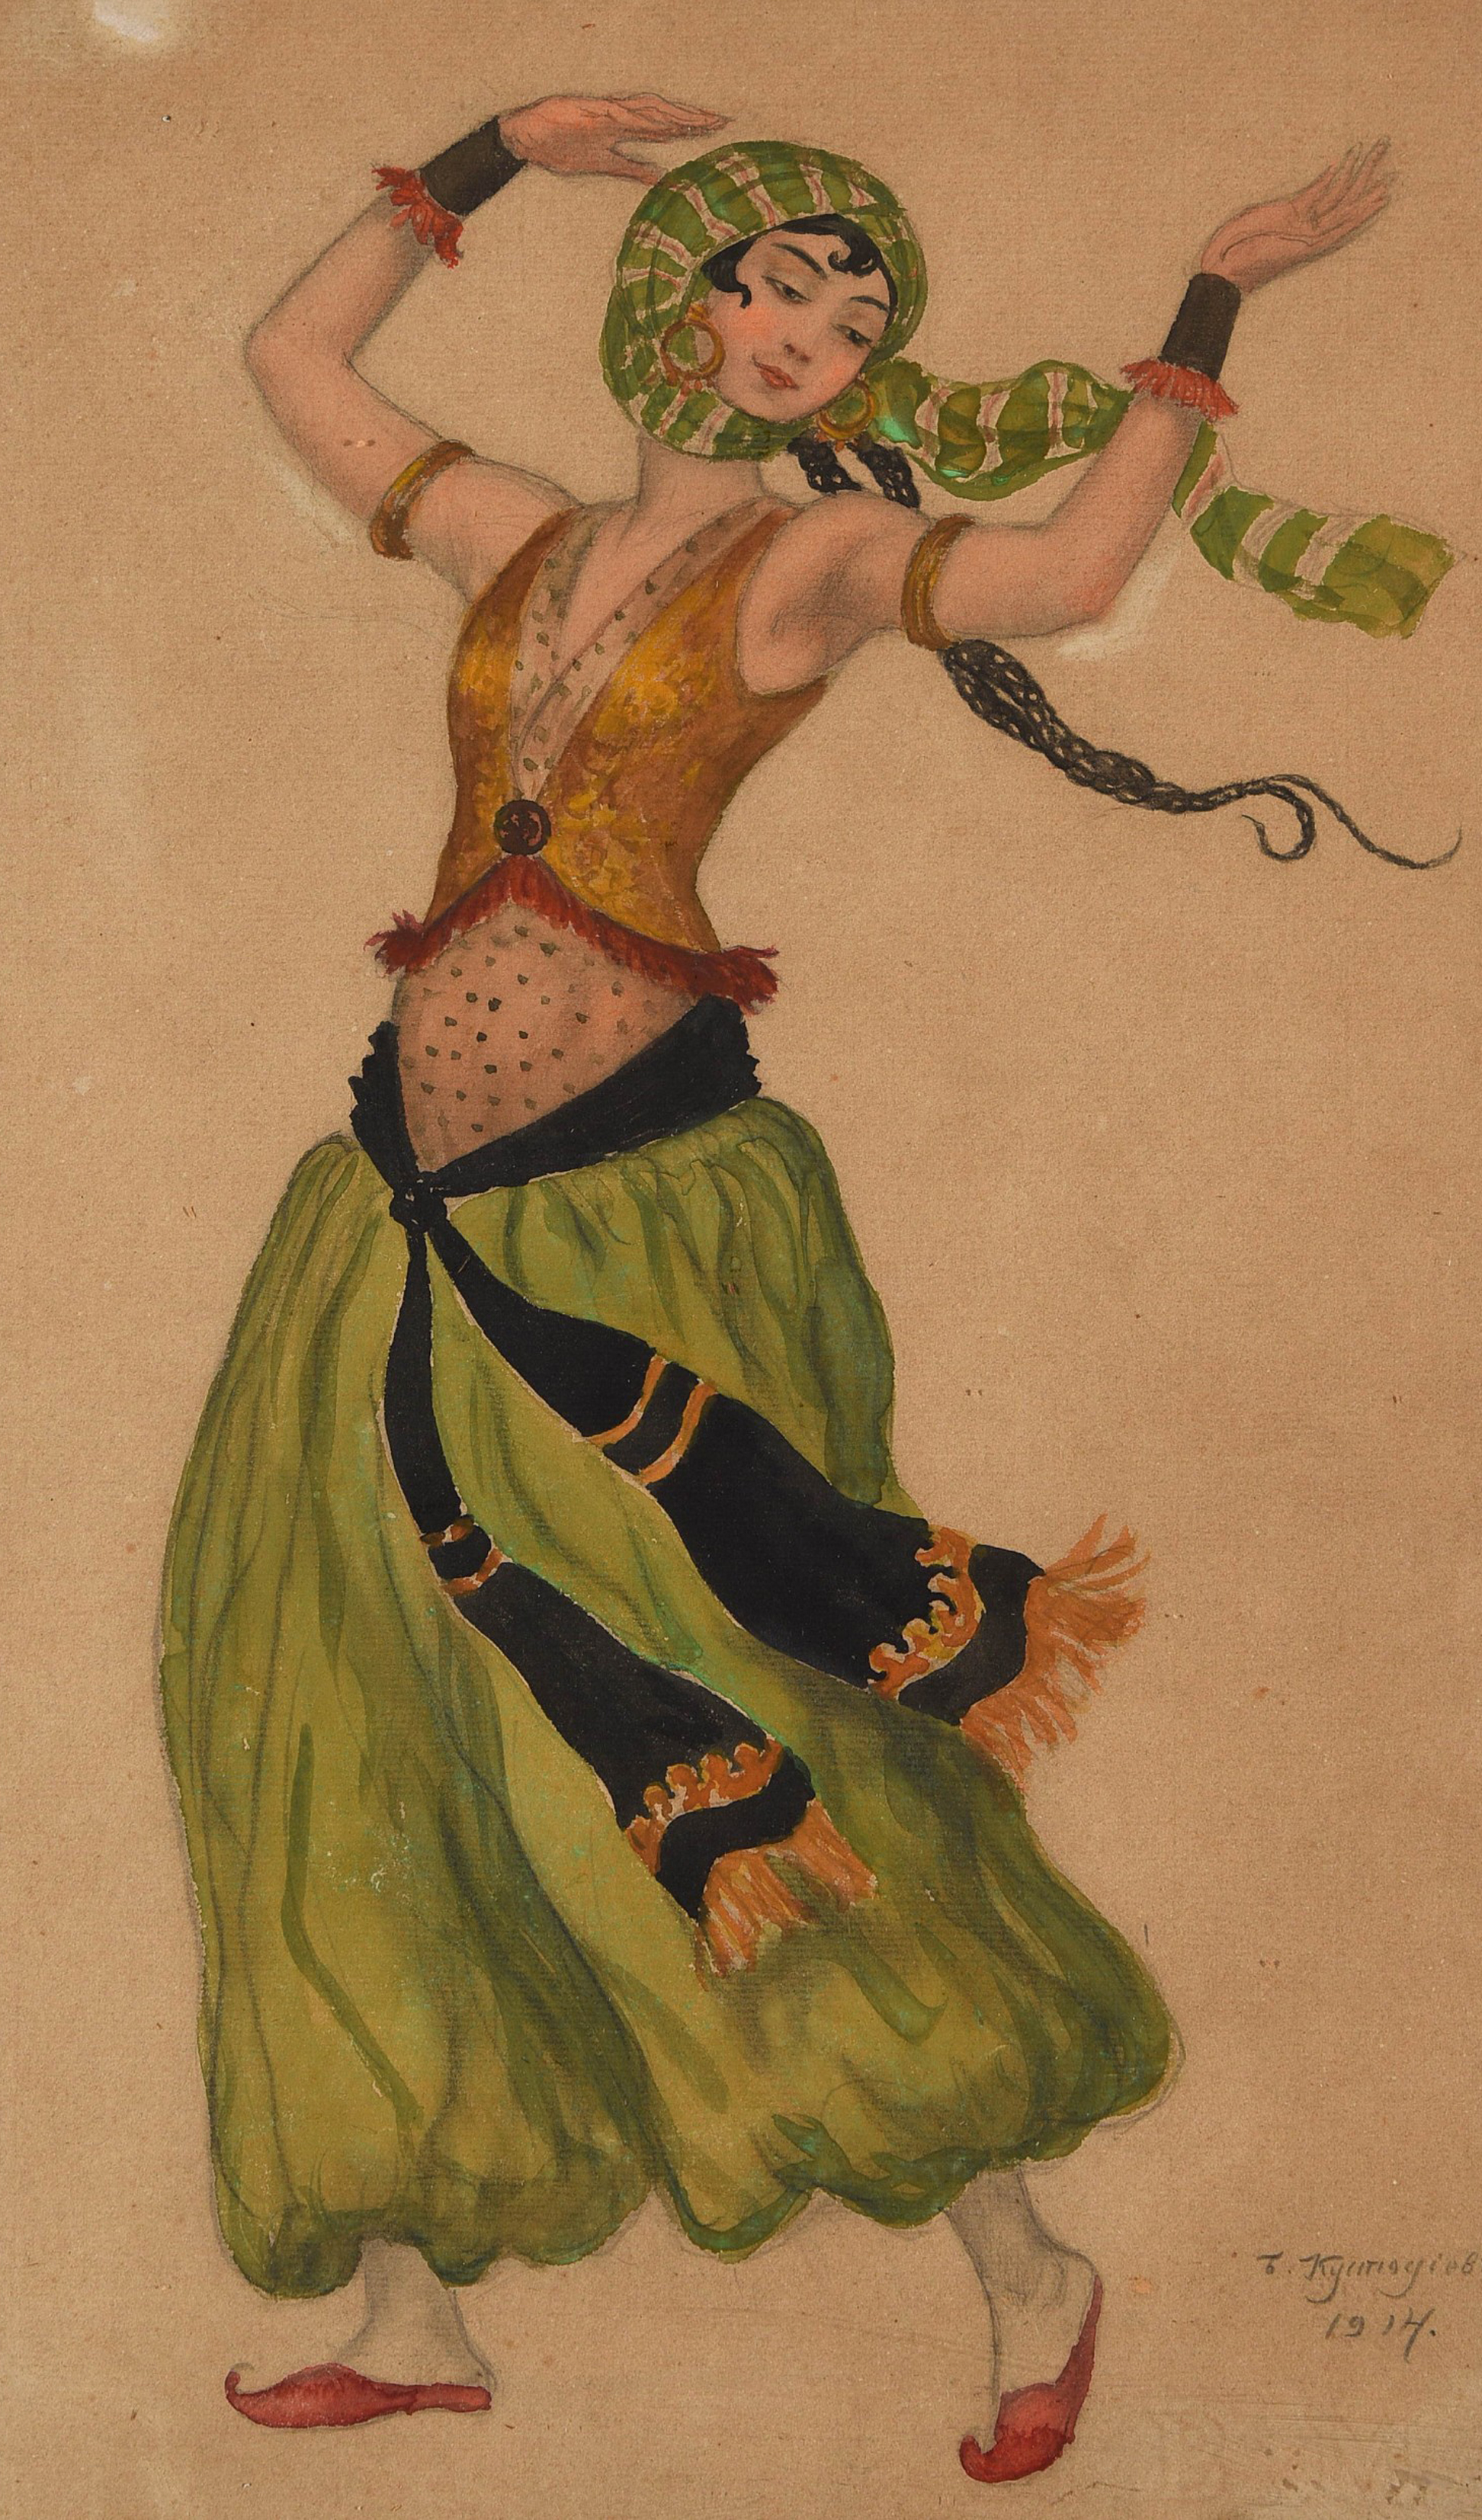 Boris Mikhailovich Kustodiev, Costume Design, probably for the character of Salome in 'The tragedy of Salome', 1914, Photo: © HVMC